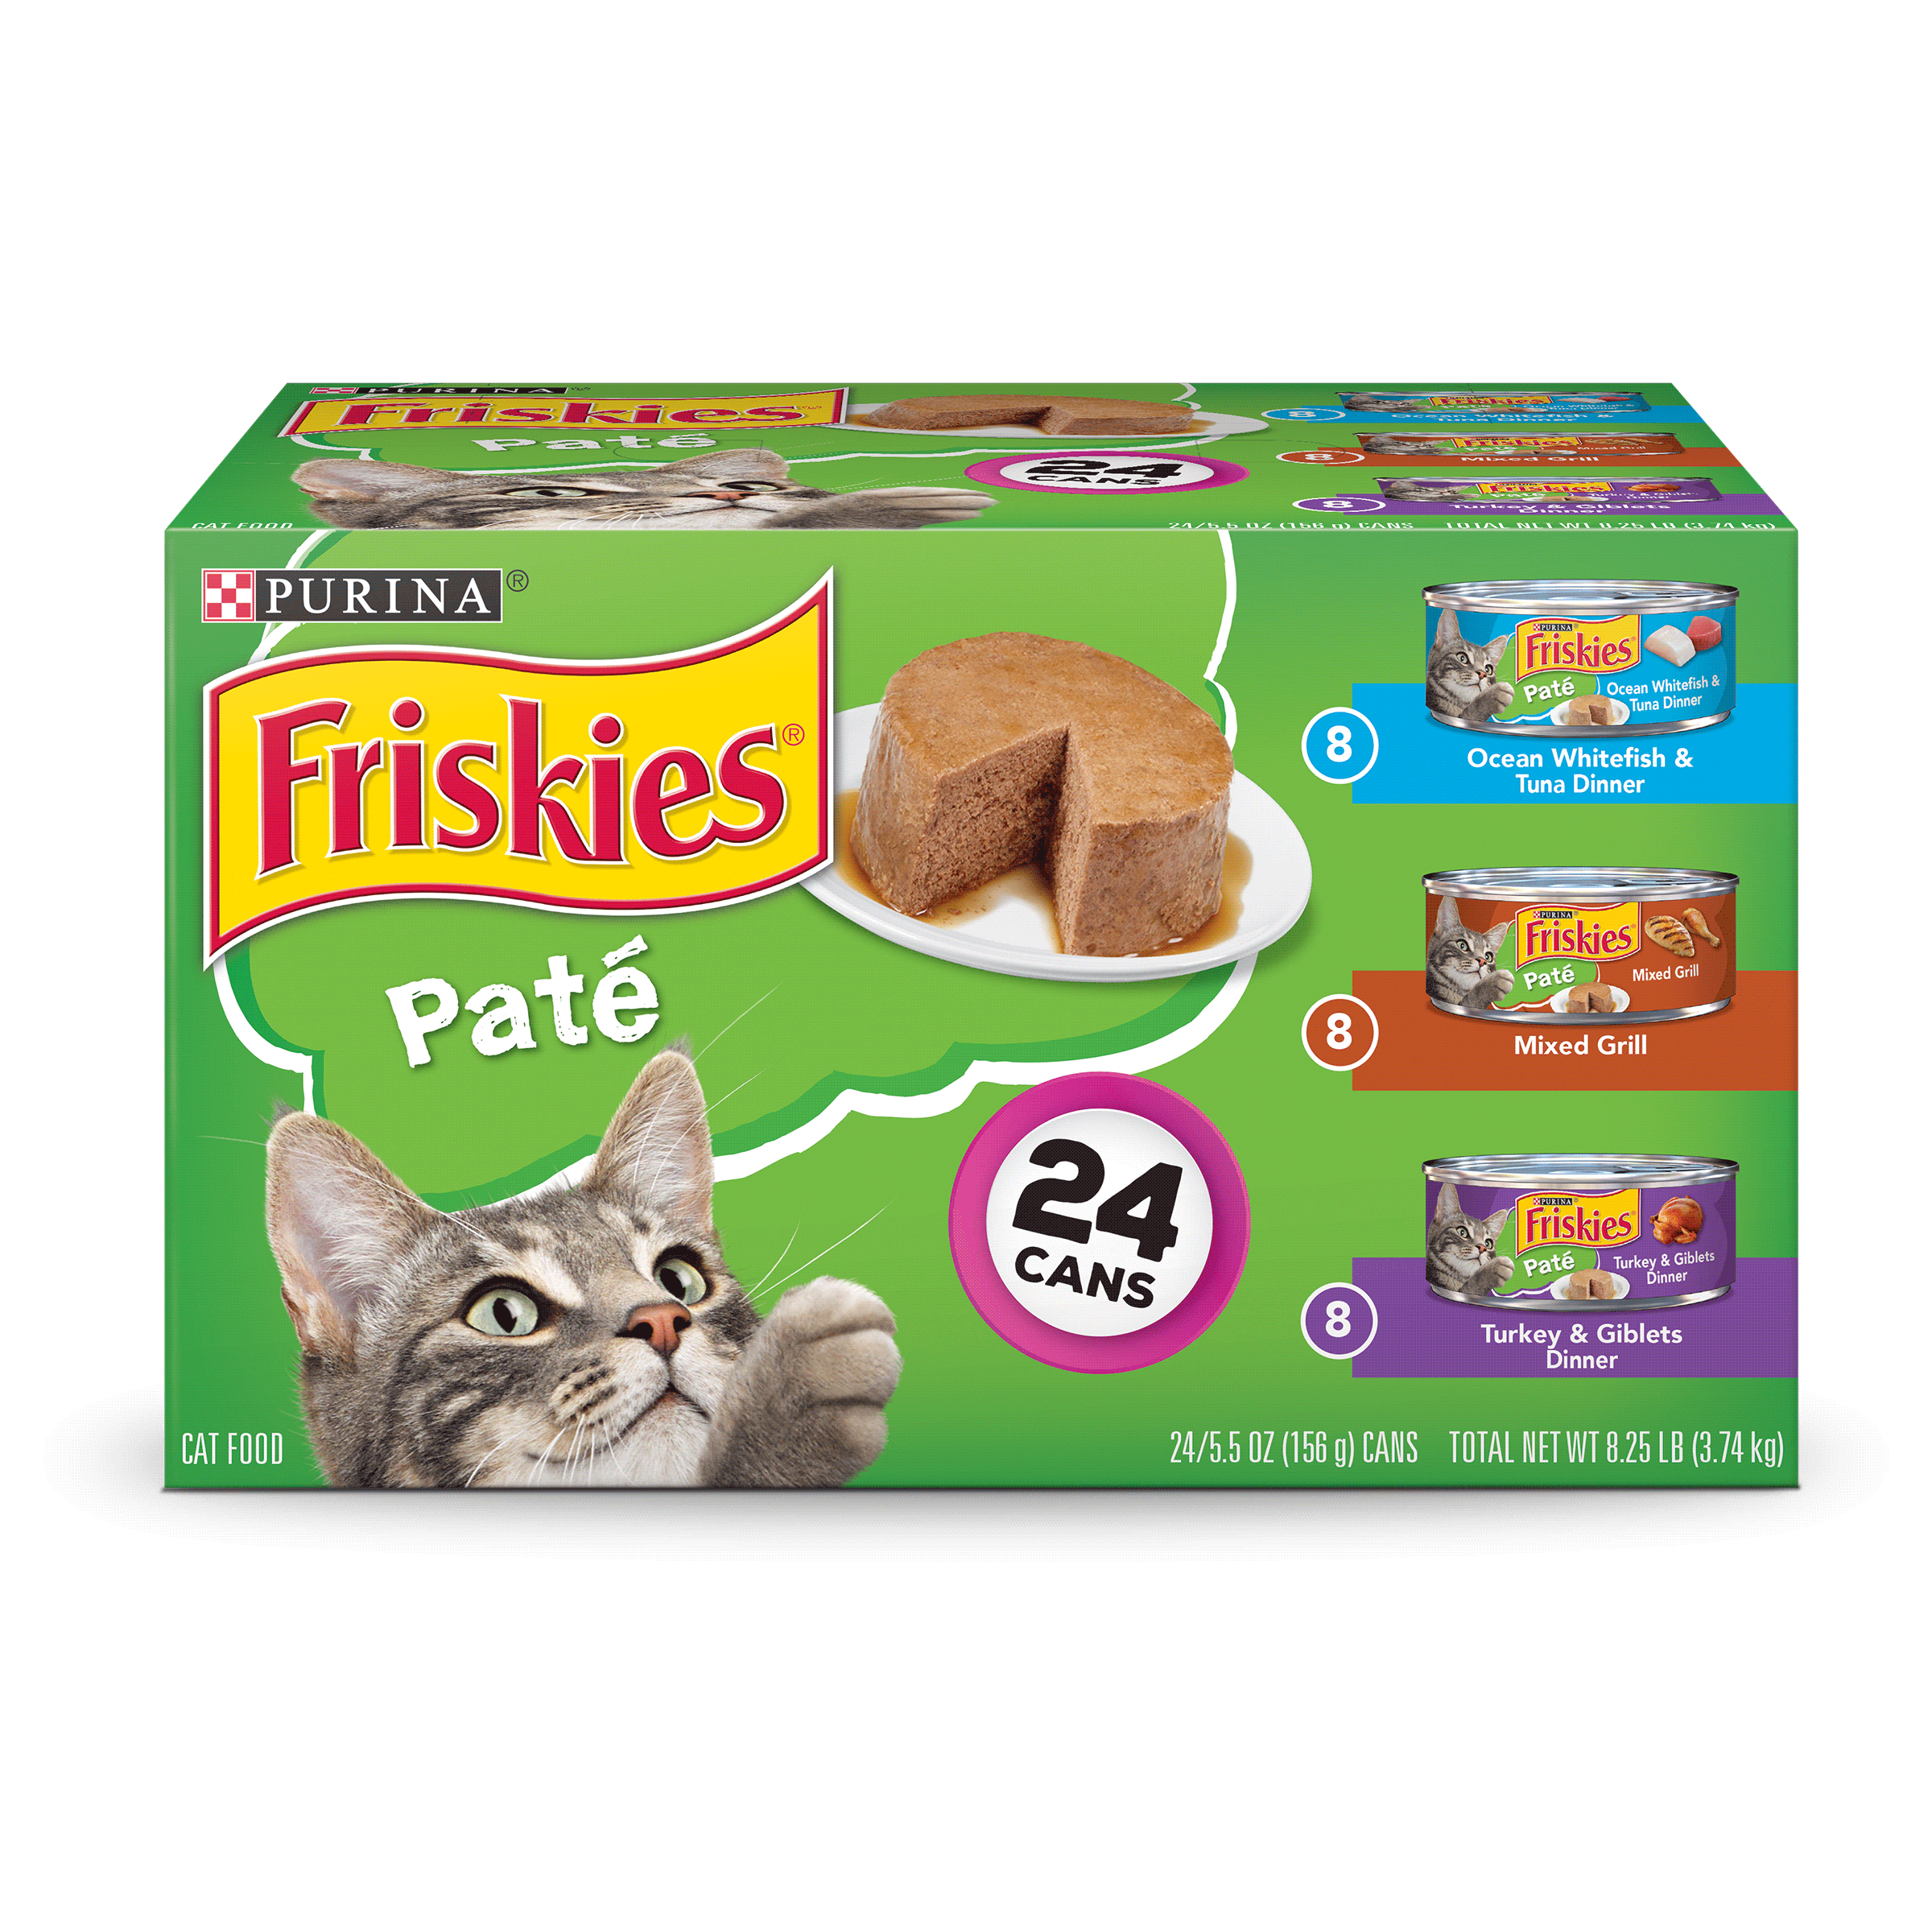 Purina Friskies Pate Adult Wet Cat Food Variety Pack - (24) 5.5 oz. Cans